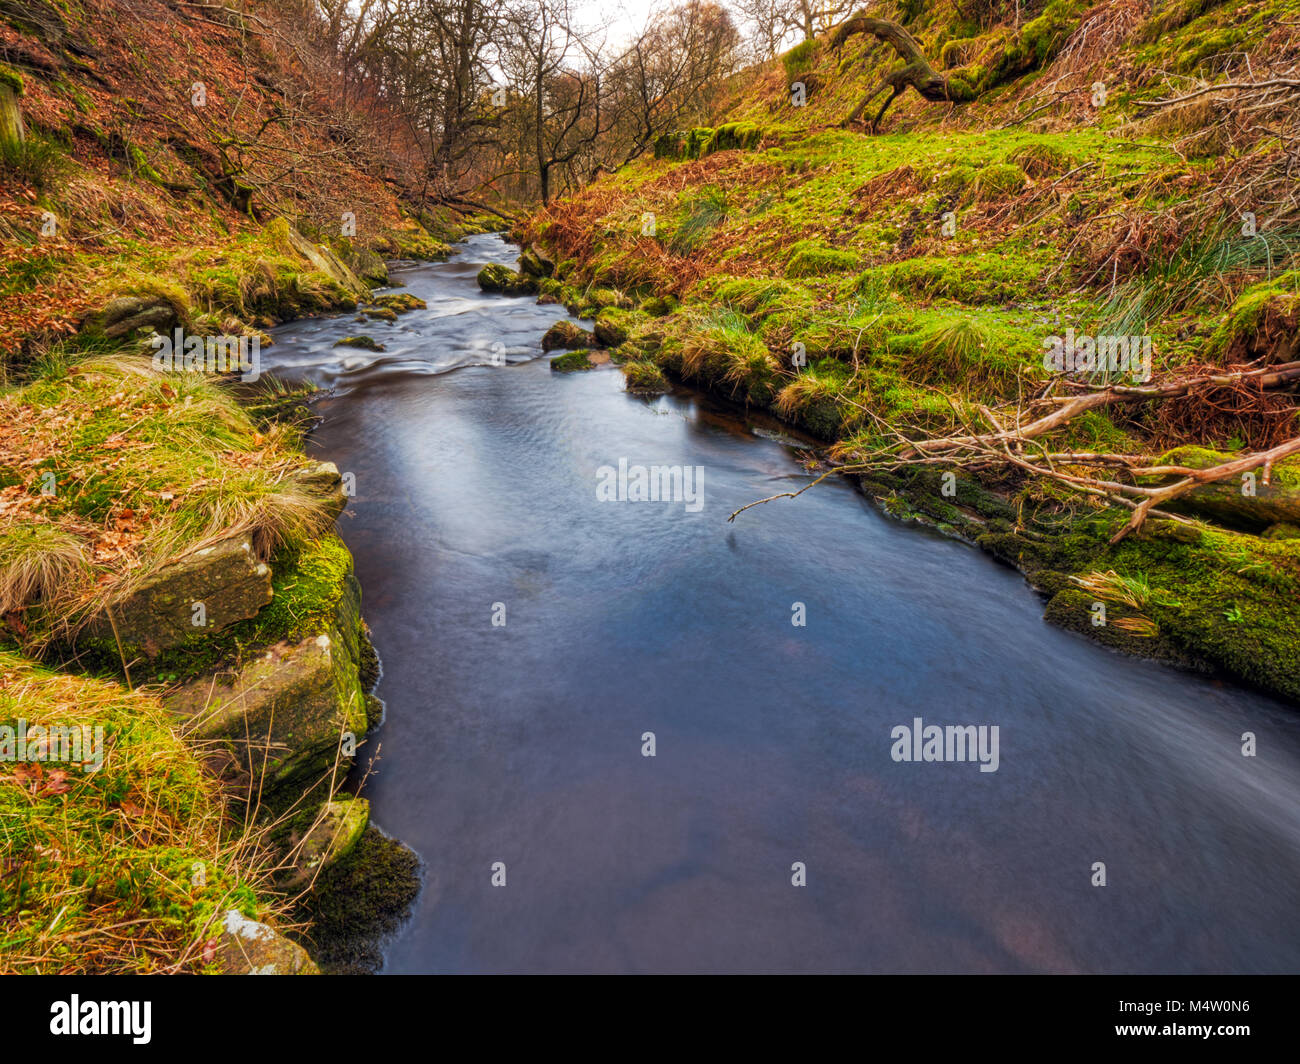 Goyt Valley, one of the most beautiful areas of the Peak District National Park lying between Buxton and Whaley - Stock Image